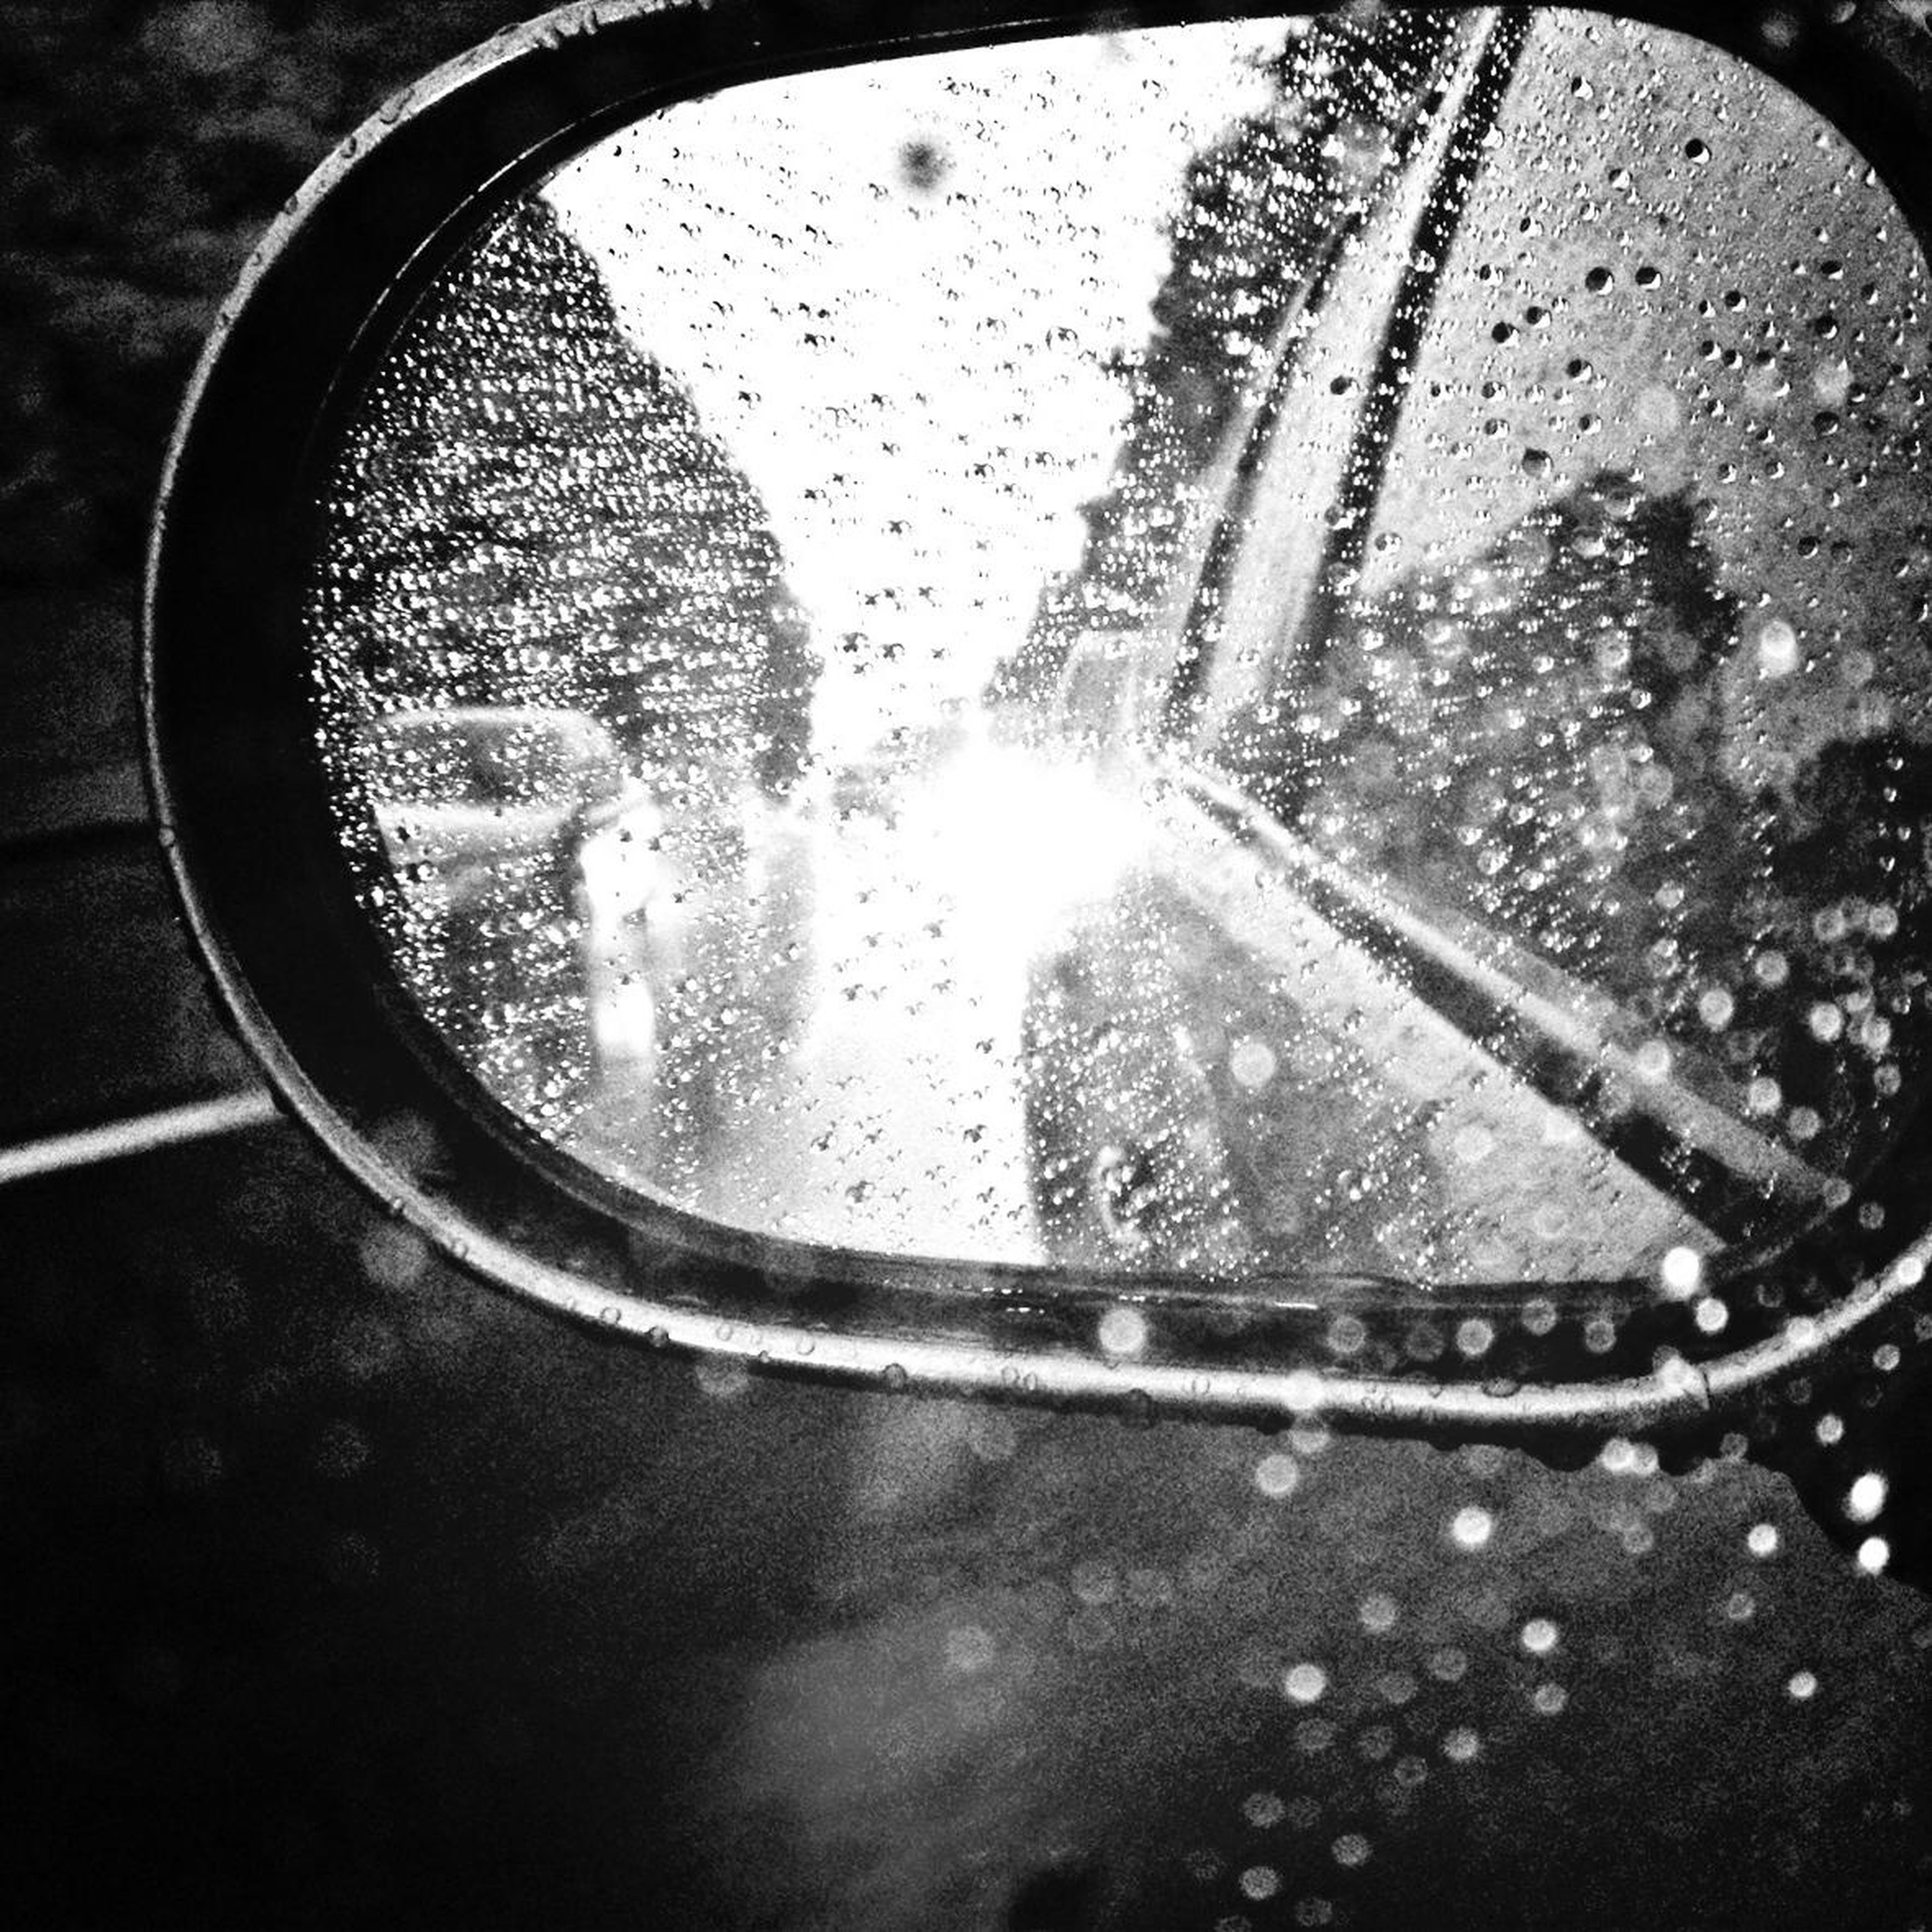 land vehicle, transportation, car, mode of transport, wet, drop, glass - material, reflection, close-up, side-view mirror, transparent, water, rain, street, car interior, window, vehicle interior, part of, raindrop, road